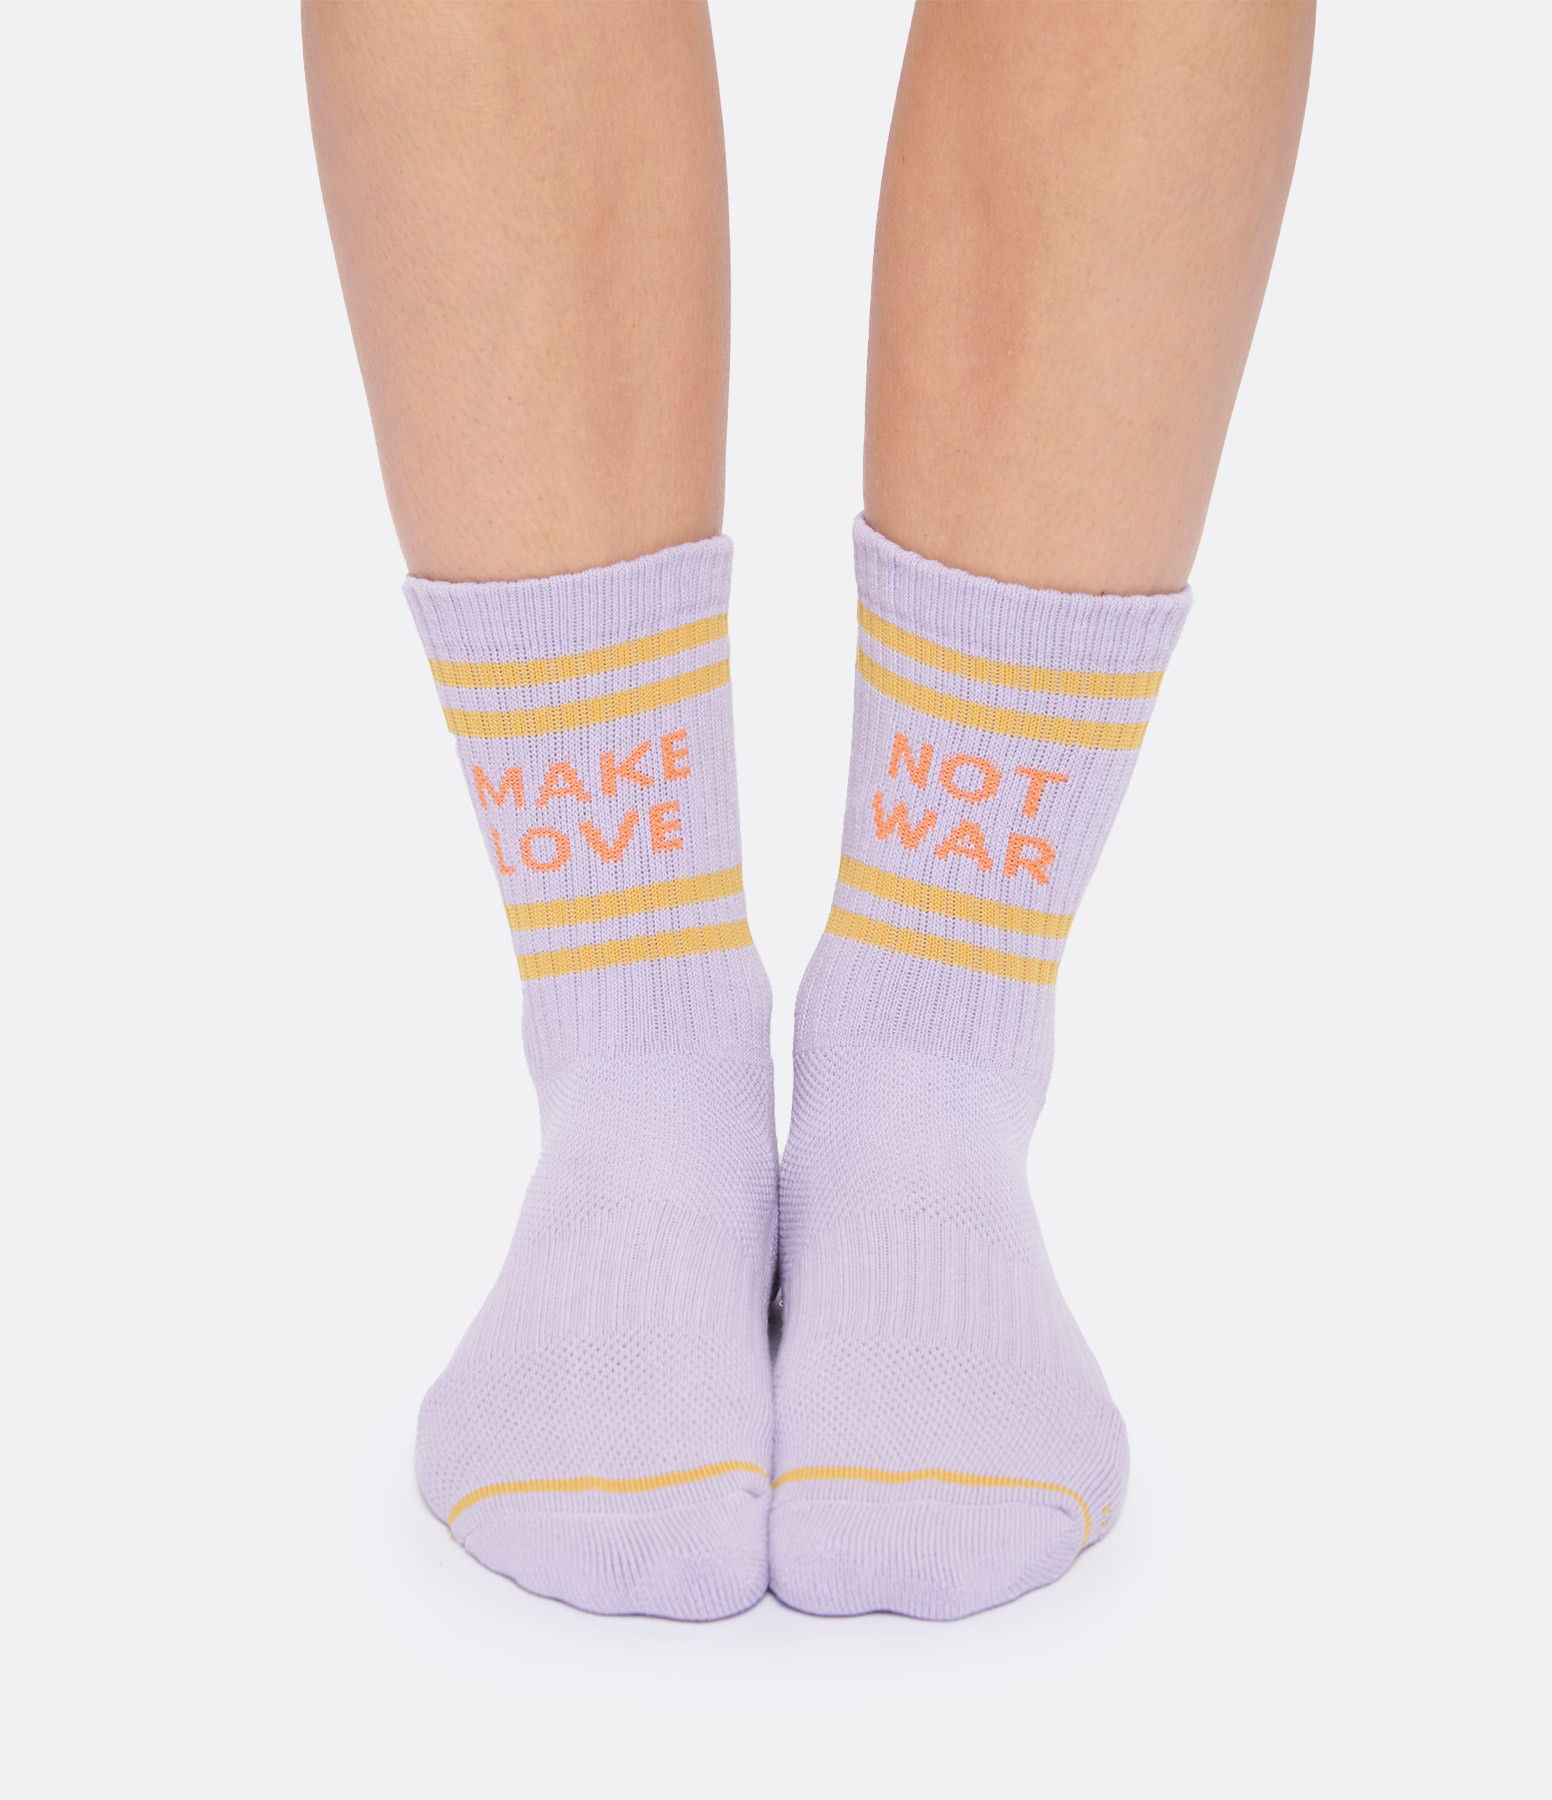 MOTHER - Chausettes Baby Steps Coton Violet